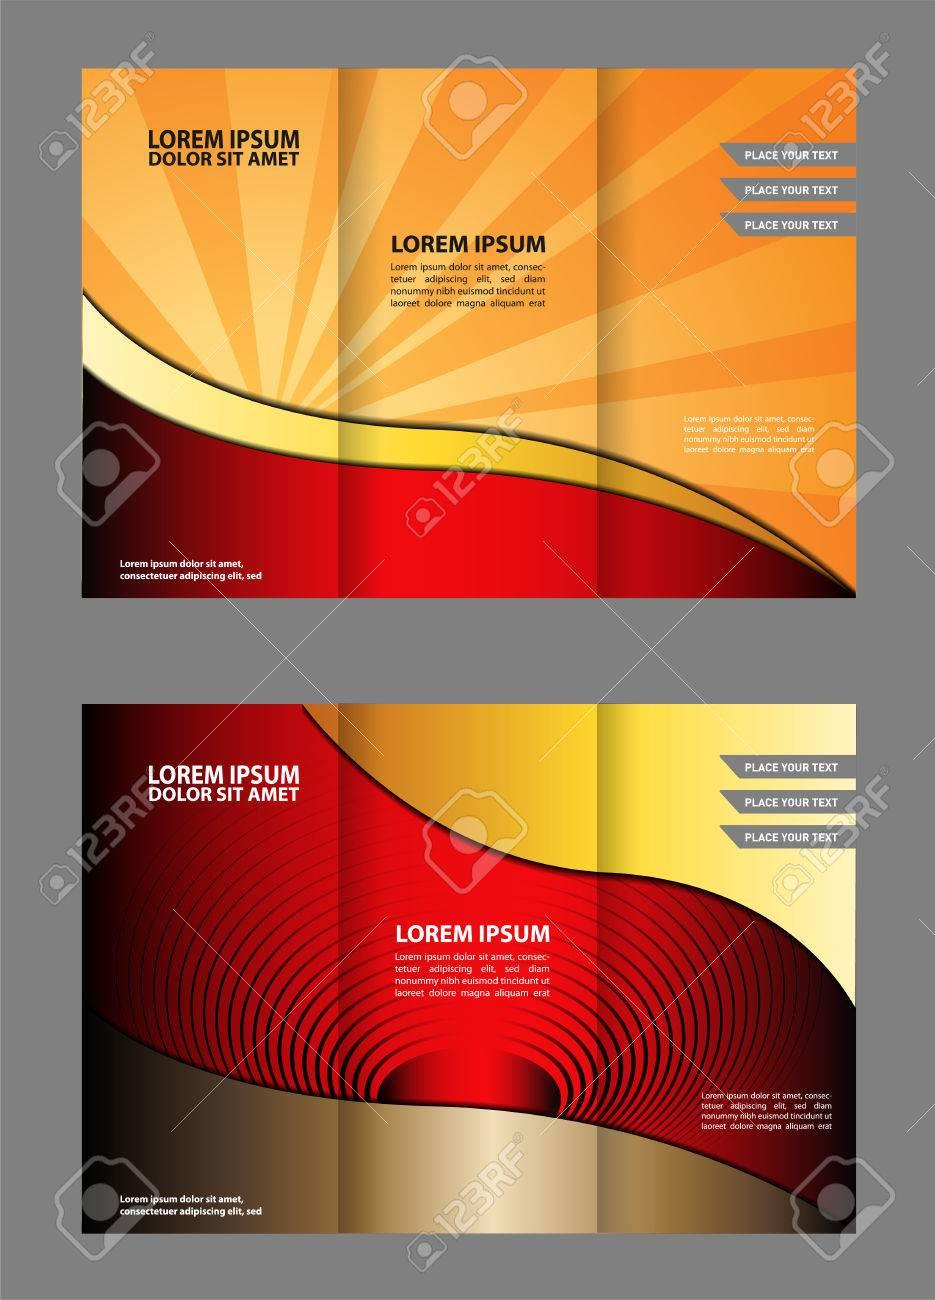 Free Editable School Brochure Templates